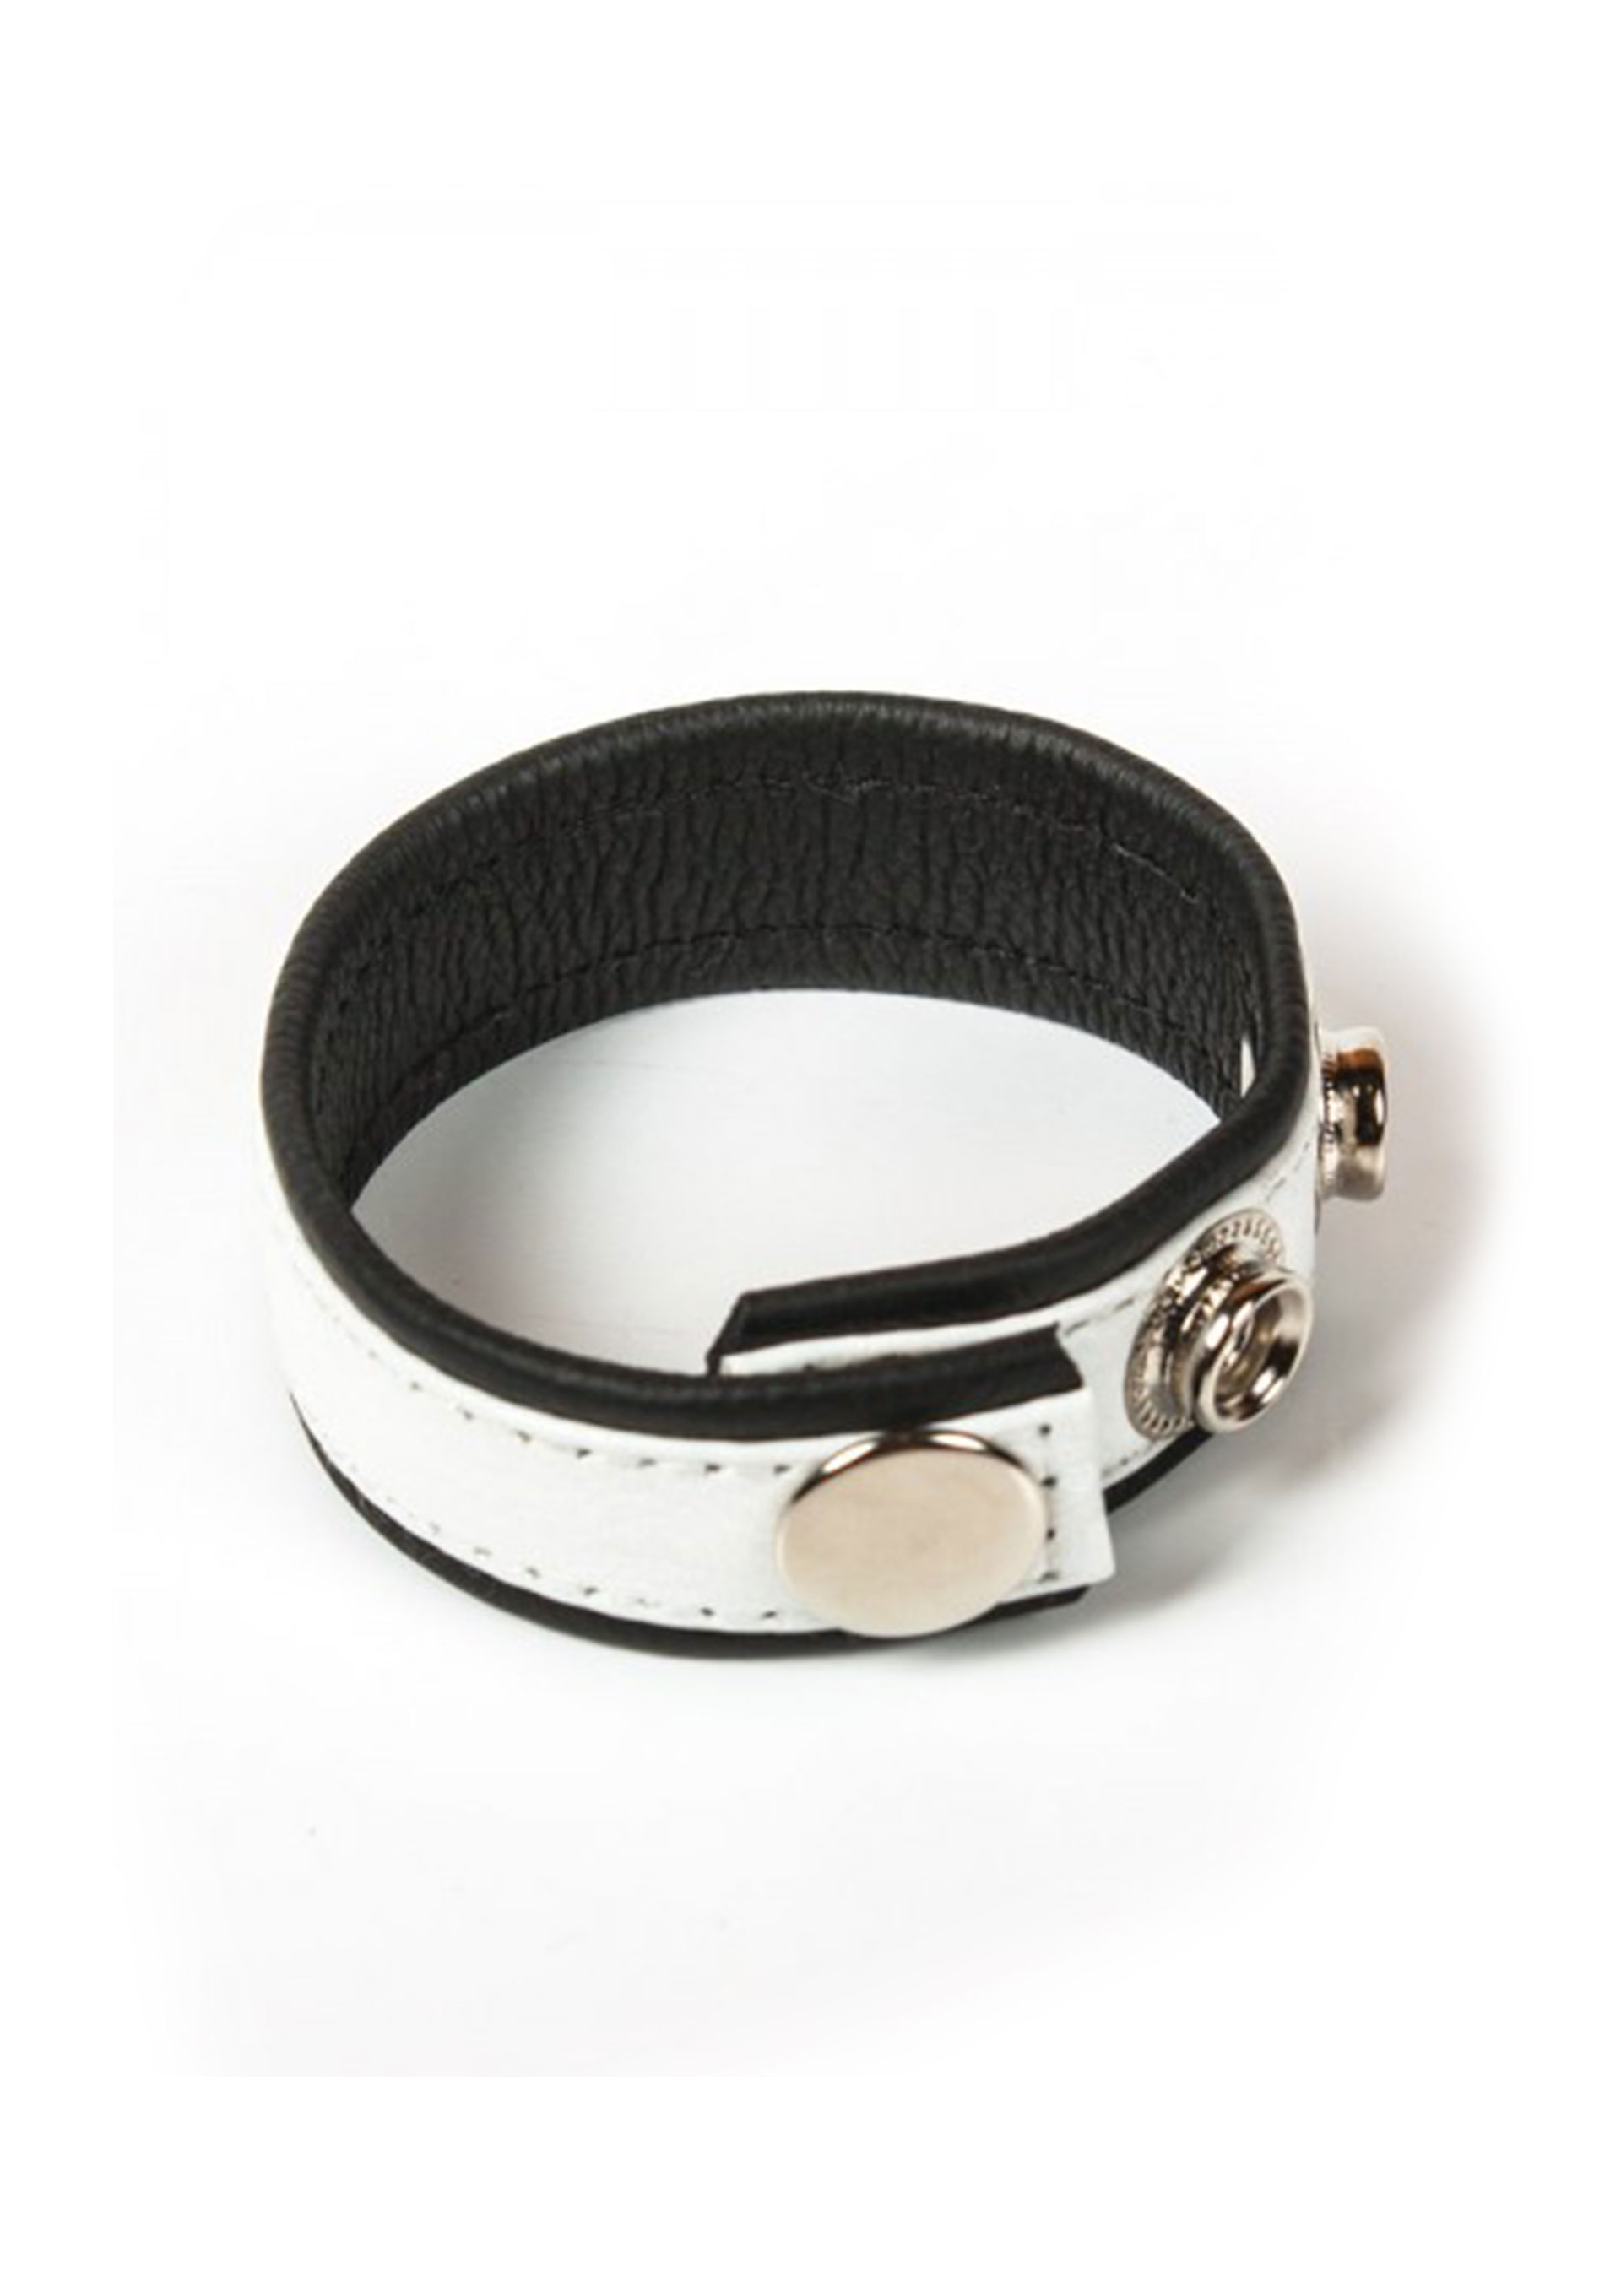 3 Snap Leather Cock Ring Black/White